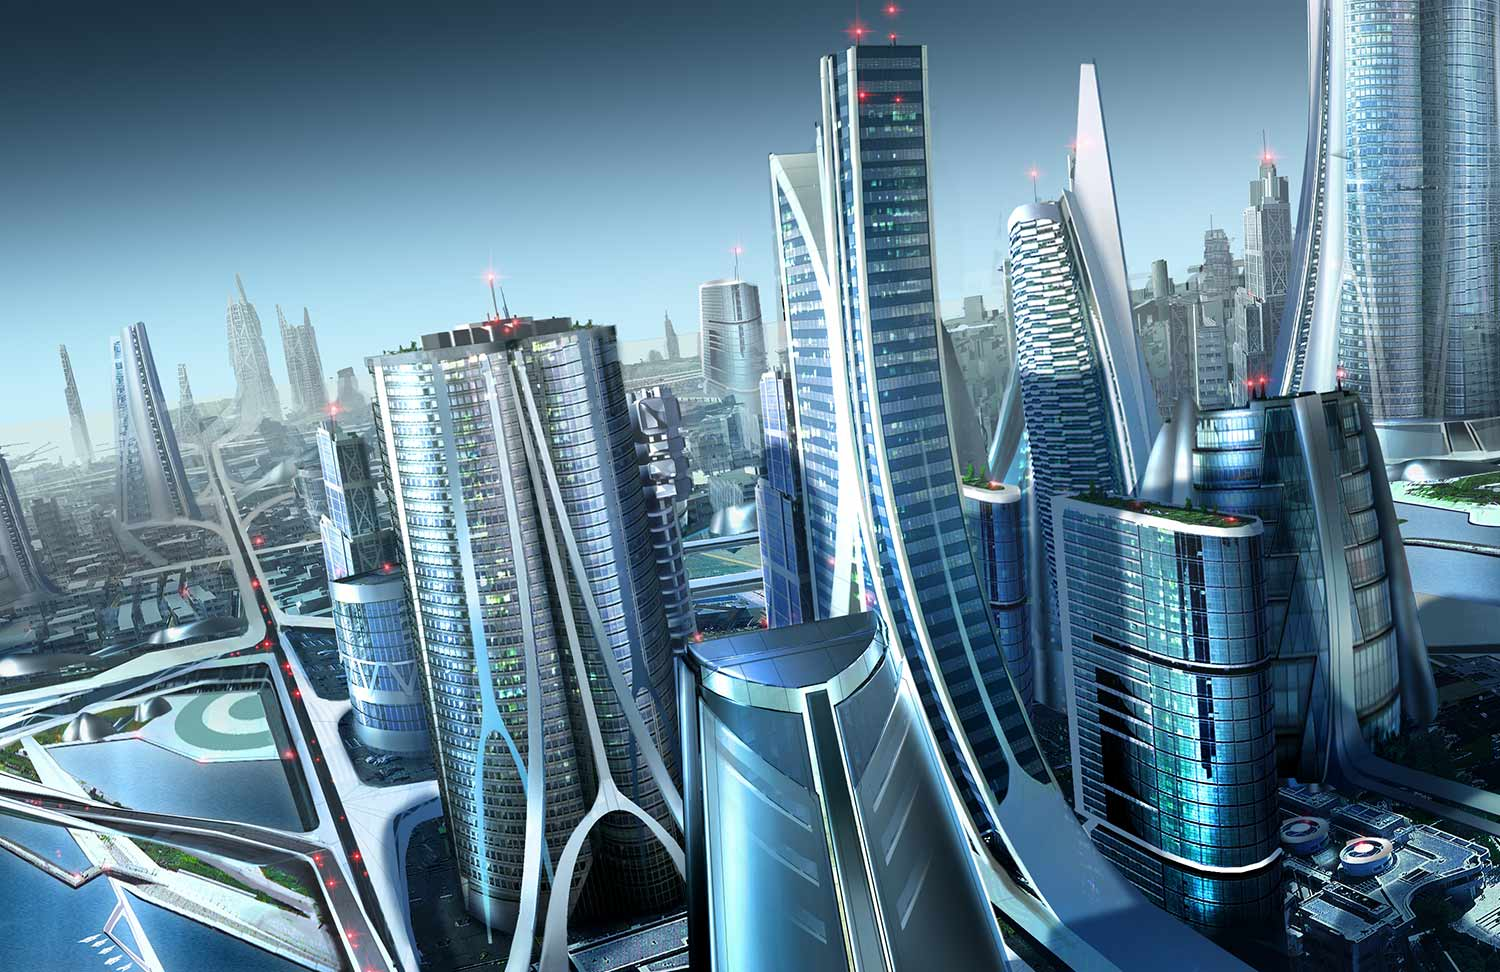 Cities of the Future by techgnotic on DeviantArt